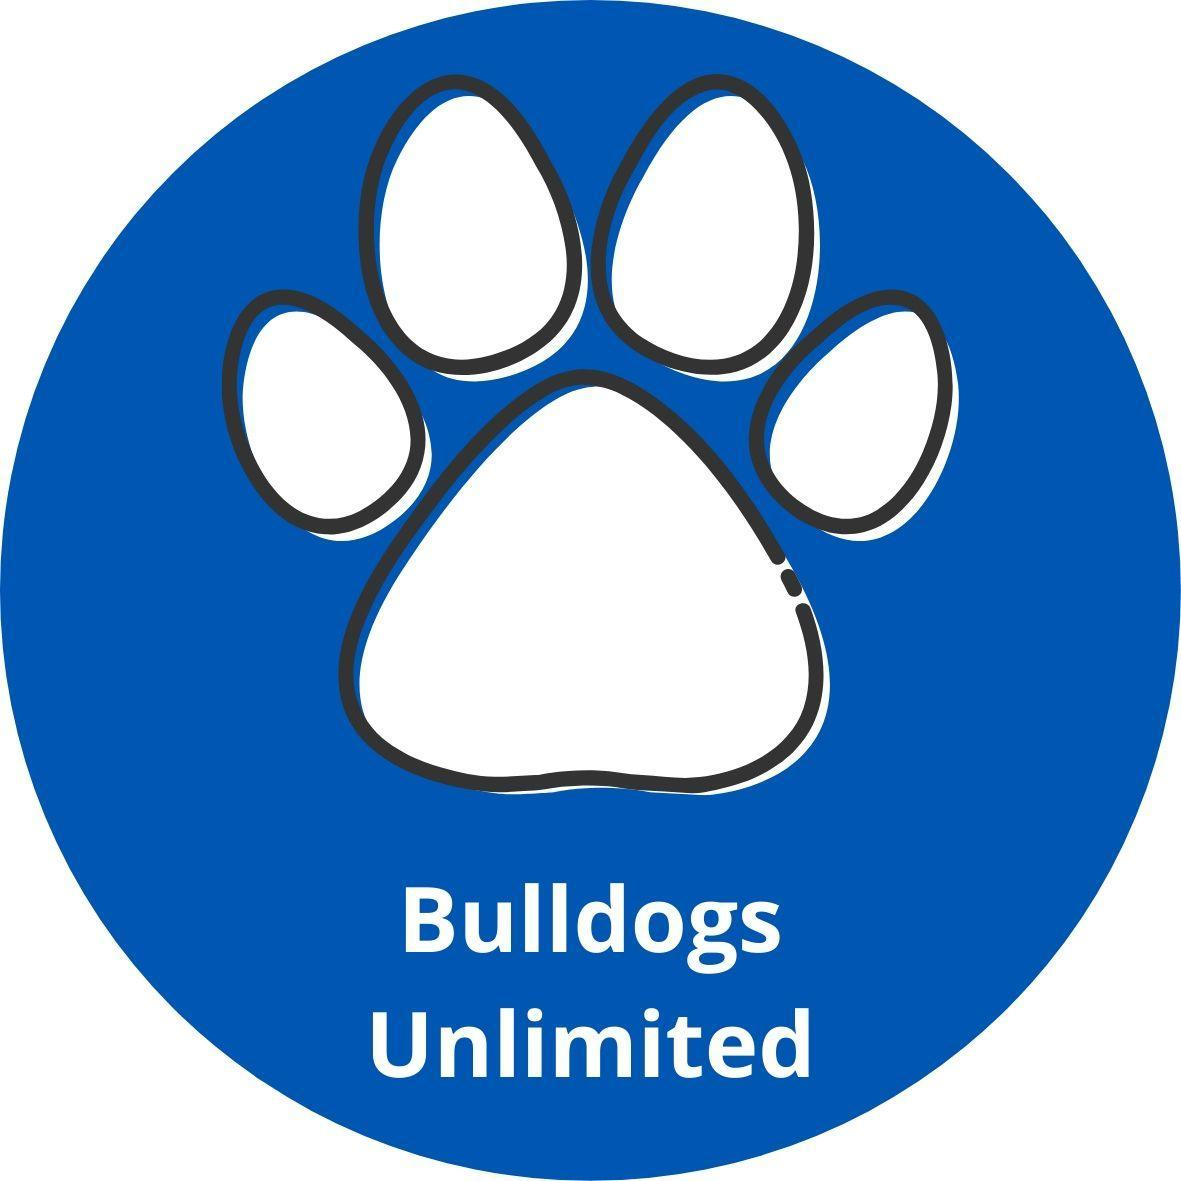 Bulldogs Unlimited